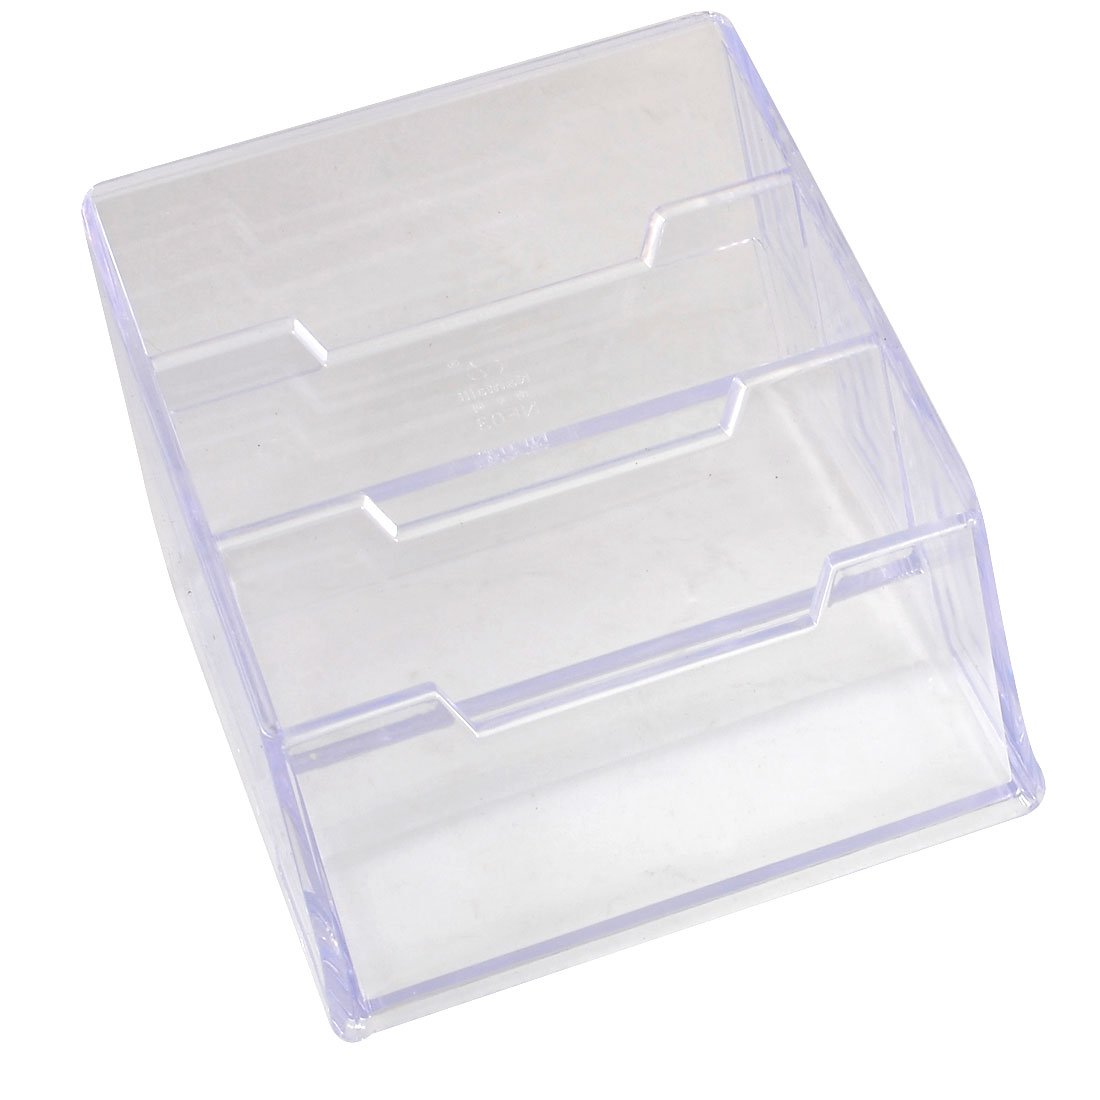 Amazon.com : Plastic 3-tier Design Business Card Stand Holder Case ...